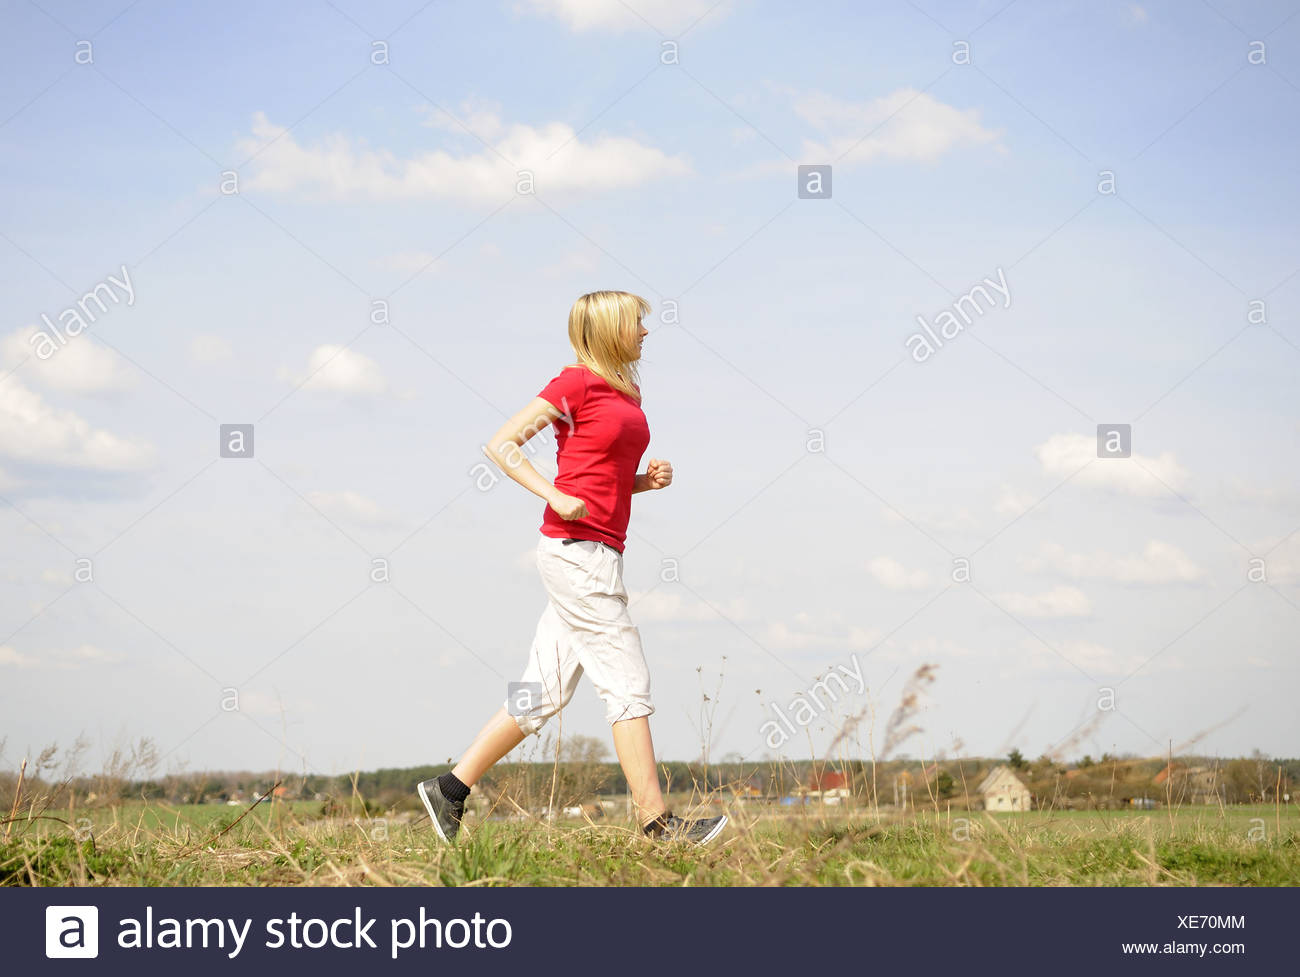 young woman jogging on a dirt road - Stock Image